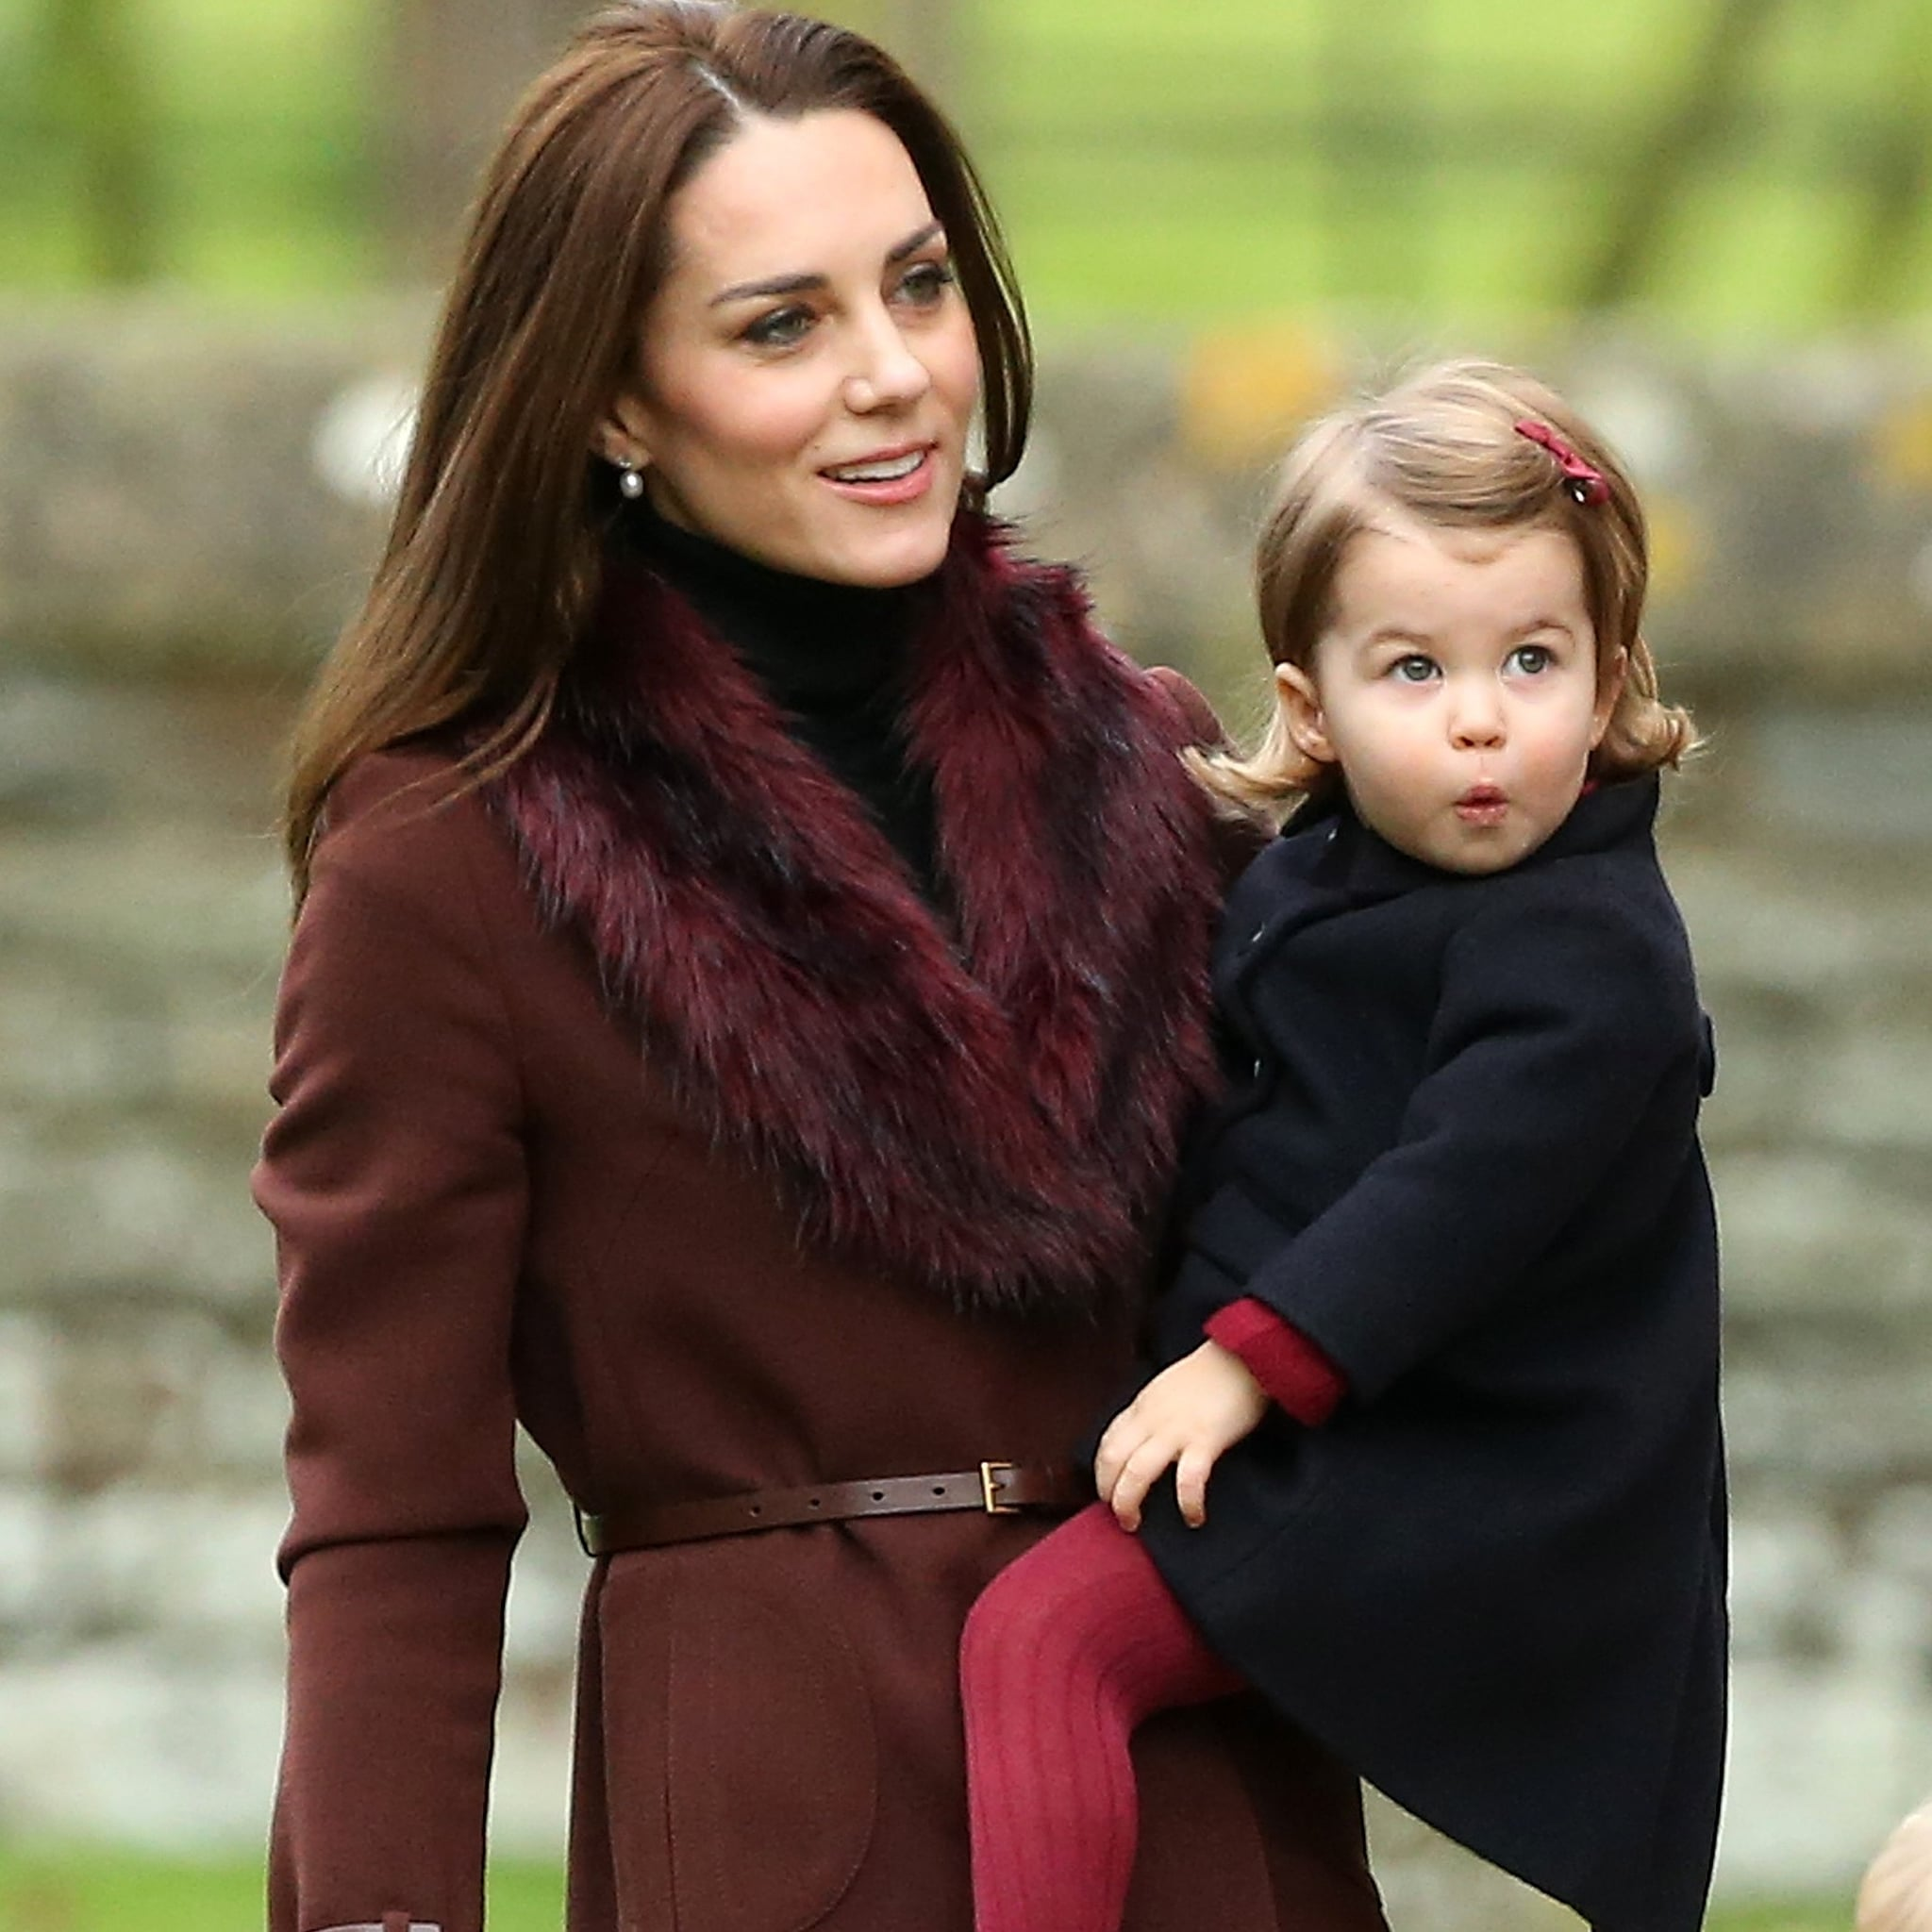 The Duchess Of Cambridge's Mum Skills' Save The Day On A Royal Visit To Coventry The Duchess Of Cambridge's Mum Skills' Save The Day On A Royal Visit To Coventry new images